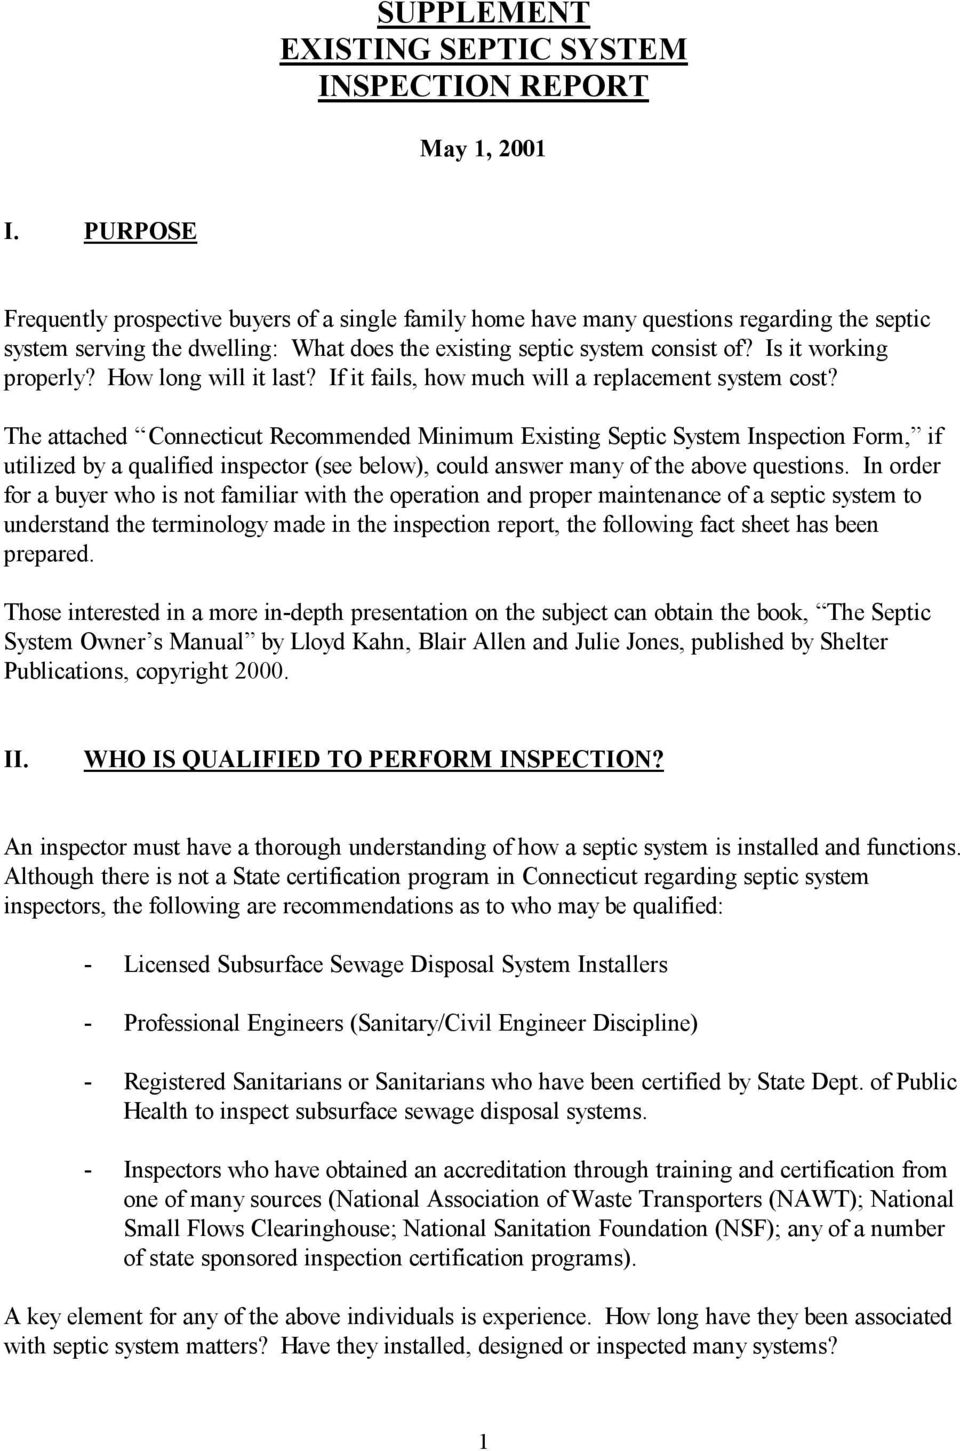 Supplement Existing Septic System Inspection Report Pdf